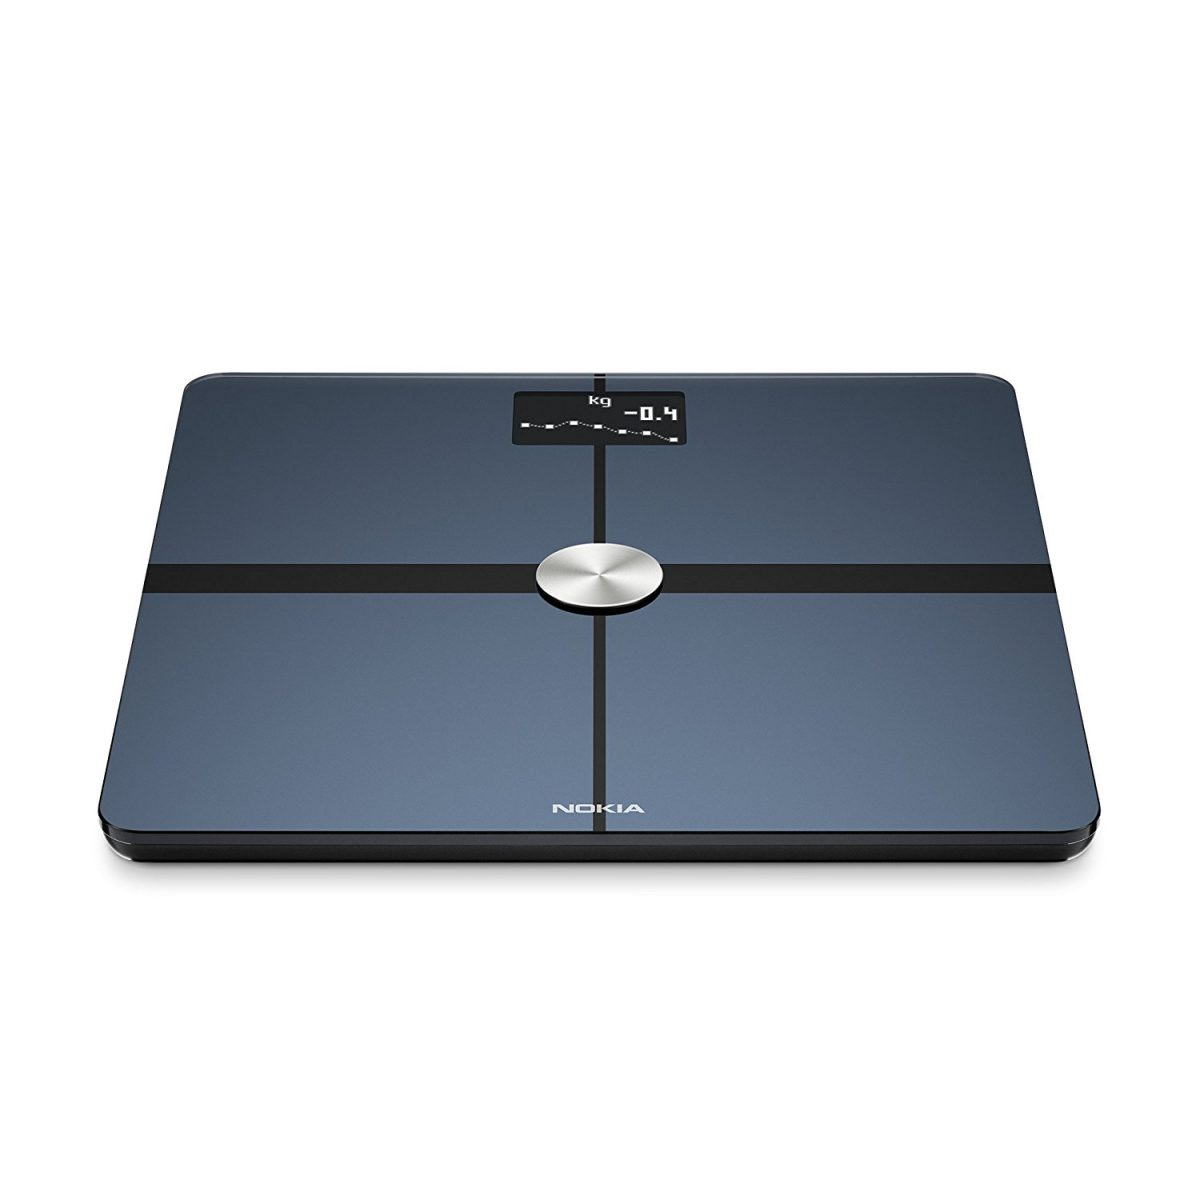 Introducing the All-New Nokia Body +/- Body Composition Wifi Bathroom Scale – $79.95